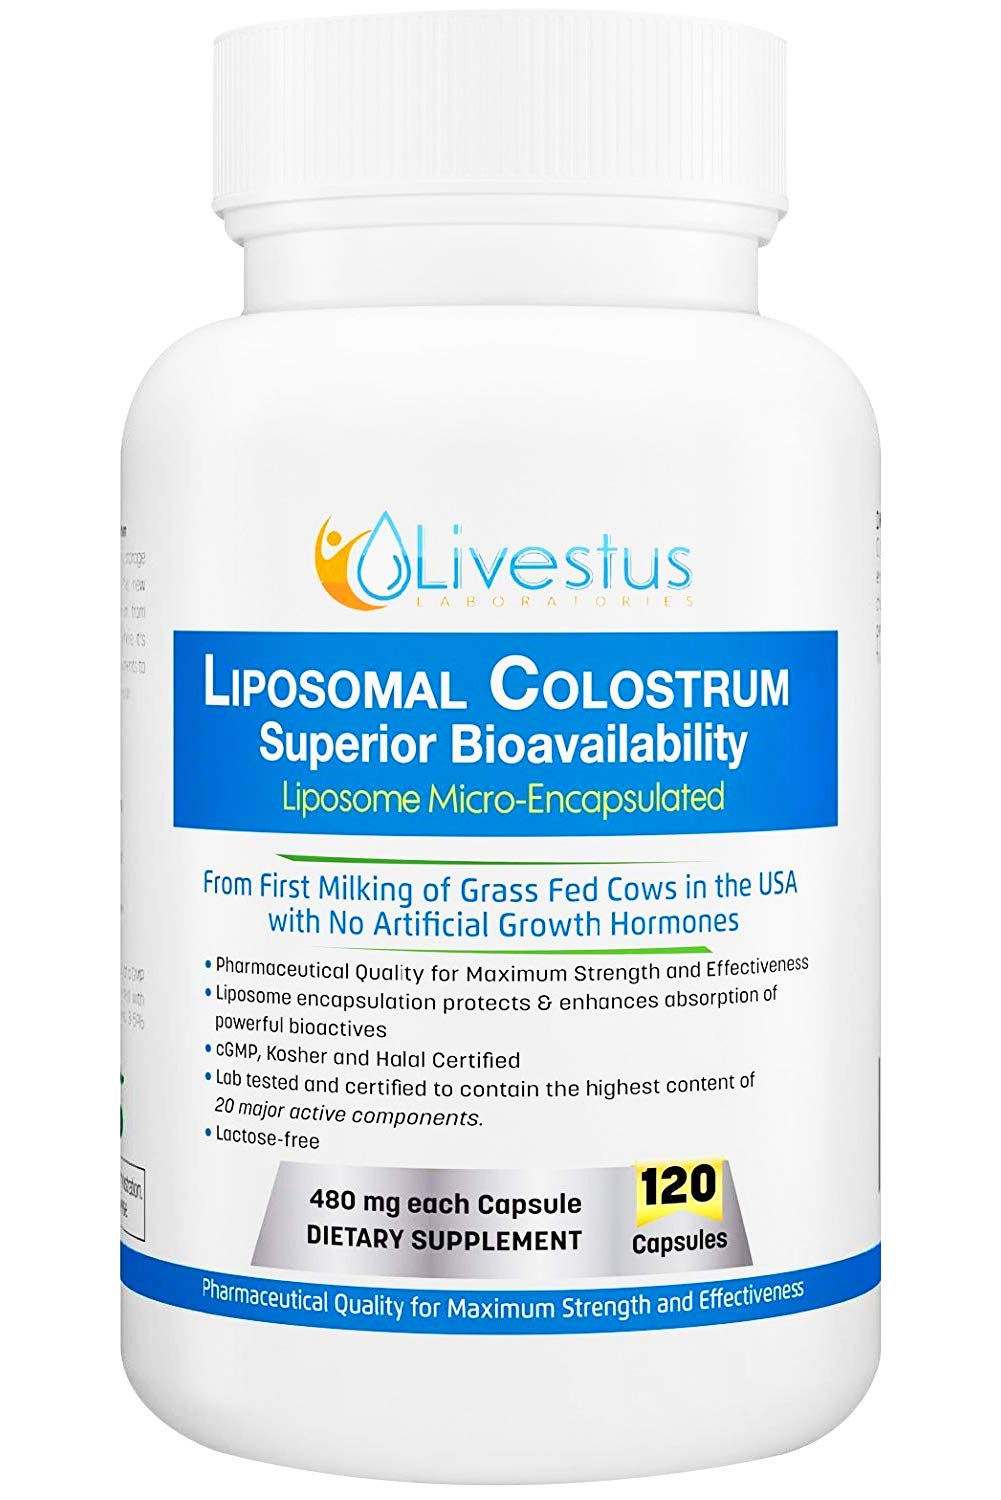 Livestus Liposomal Colostrum 120 Vegetarian Capsules with Superior Bioavailability to Heal Leaky Gut and Boost Immune System Made in USA from USDA Grass Fed Bovine Colostrum